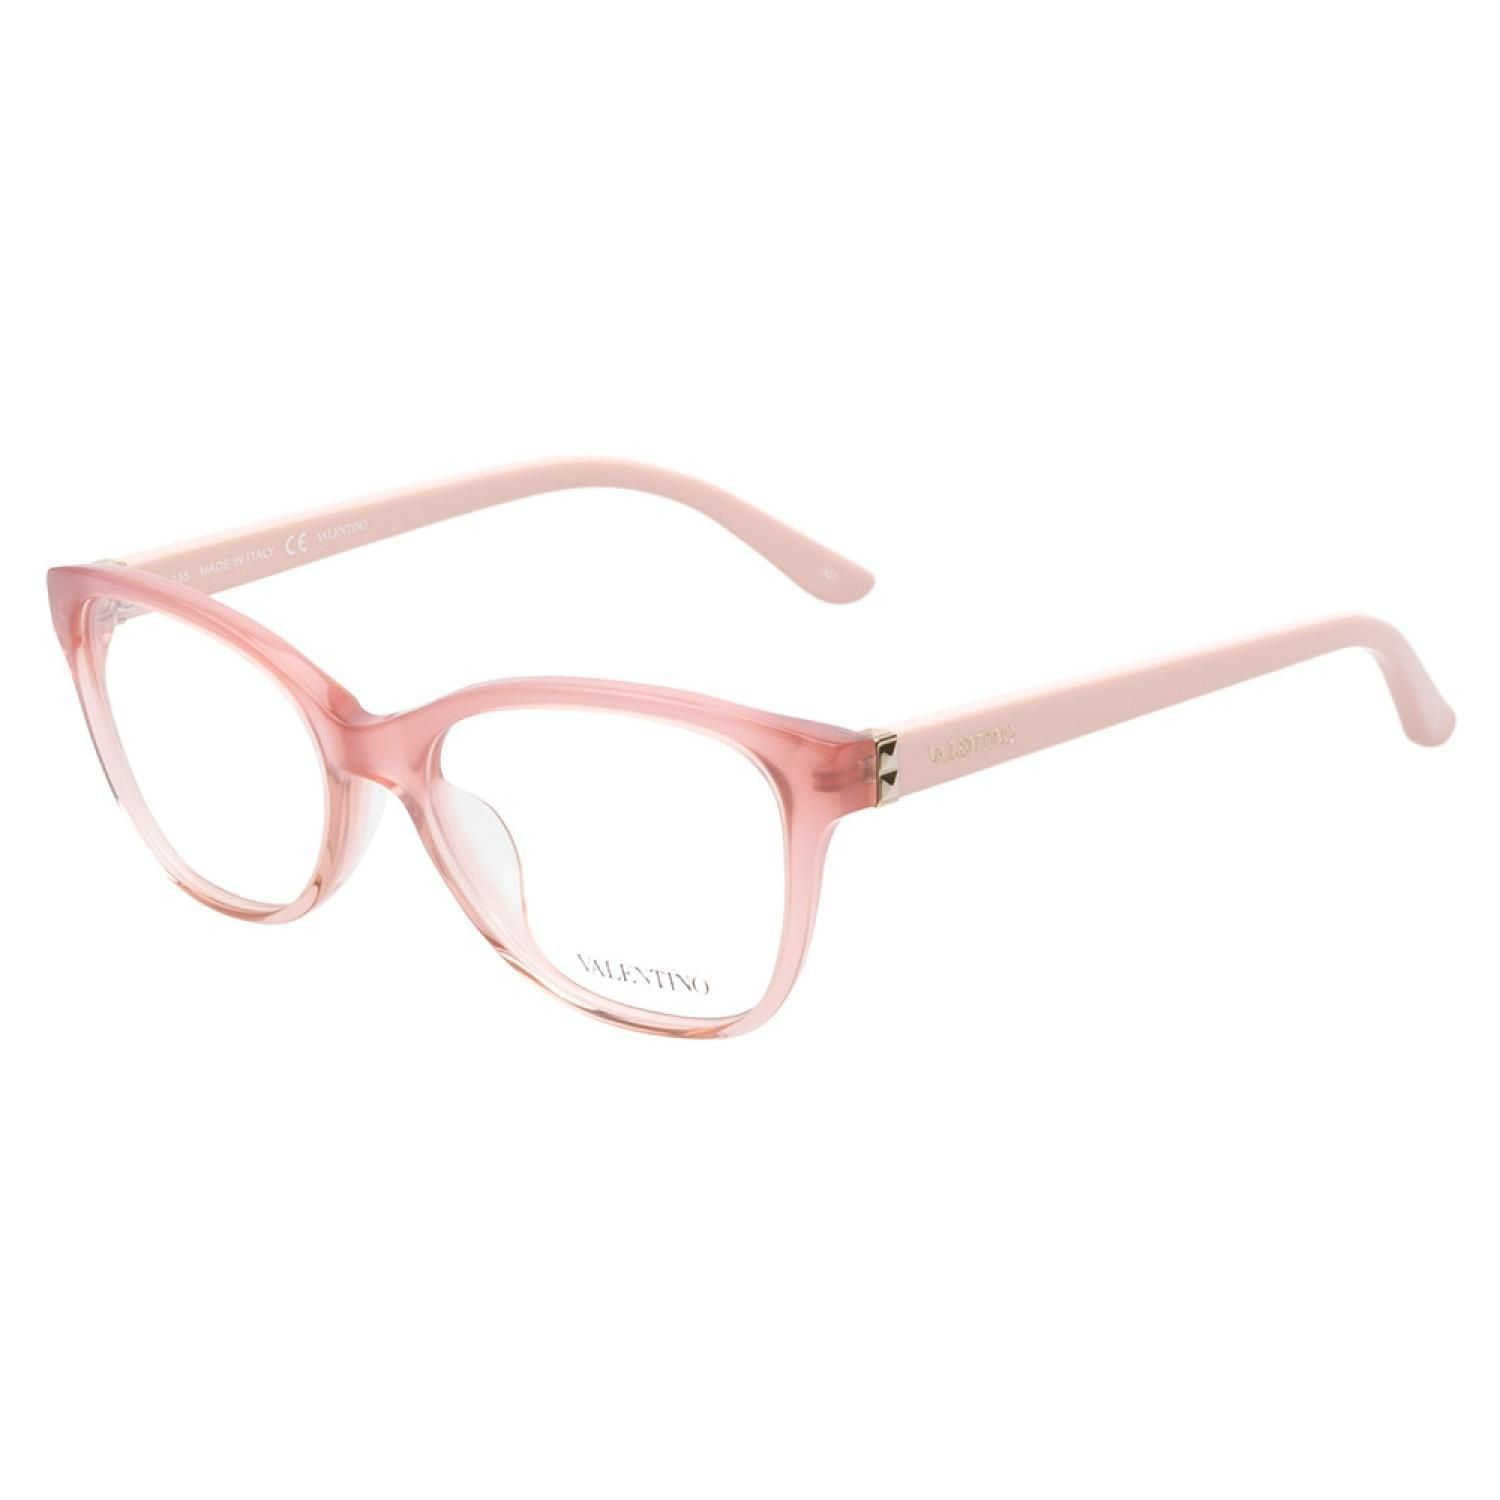 5007abab4a Valentino V2642 601 Rose eyeglasses are delicately enchanting. This poised  cateye style comes in a pretty rose hue with a semi-transparent acetate  frame ...